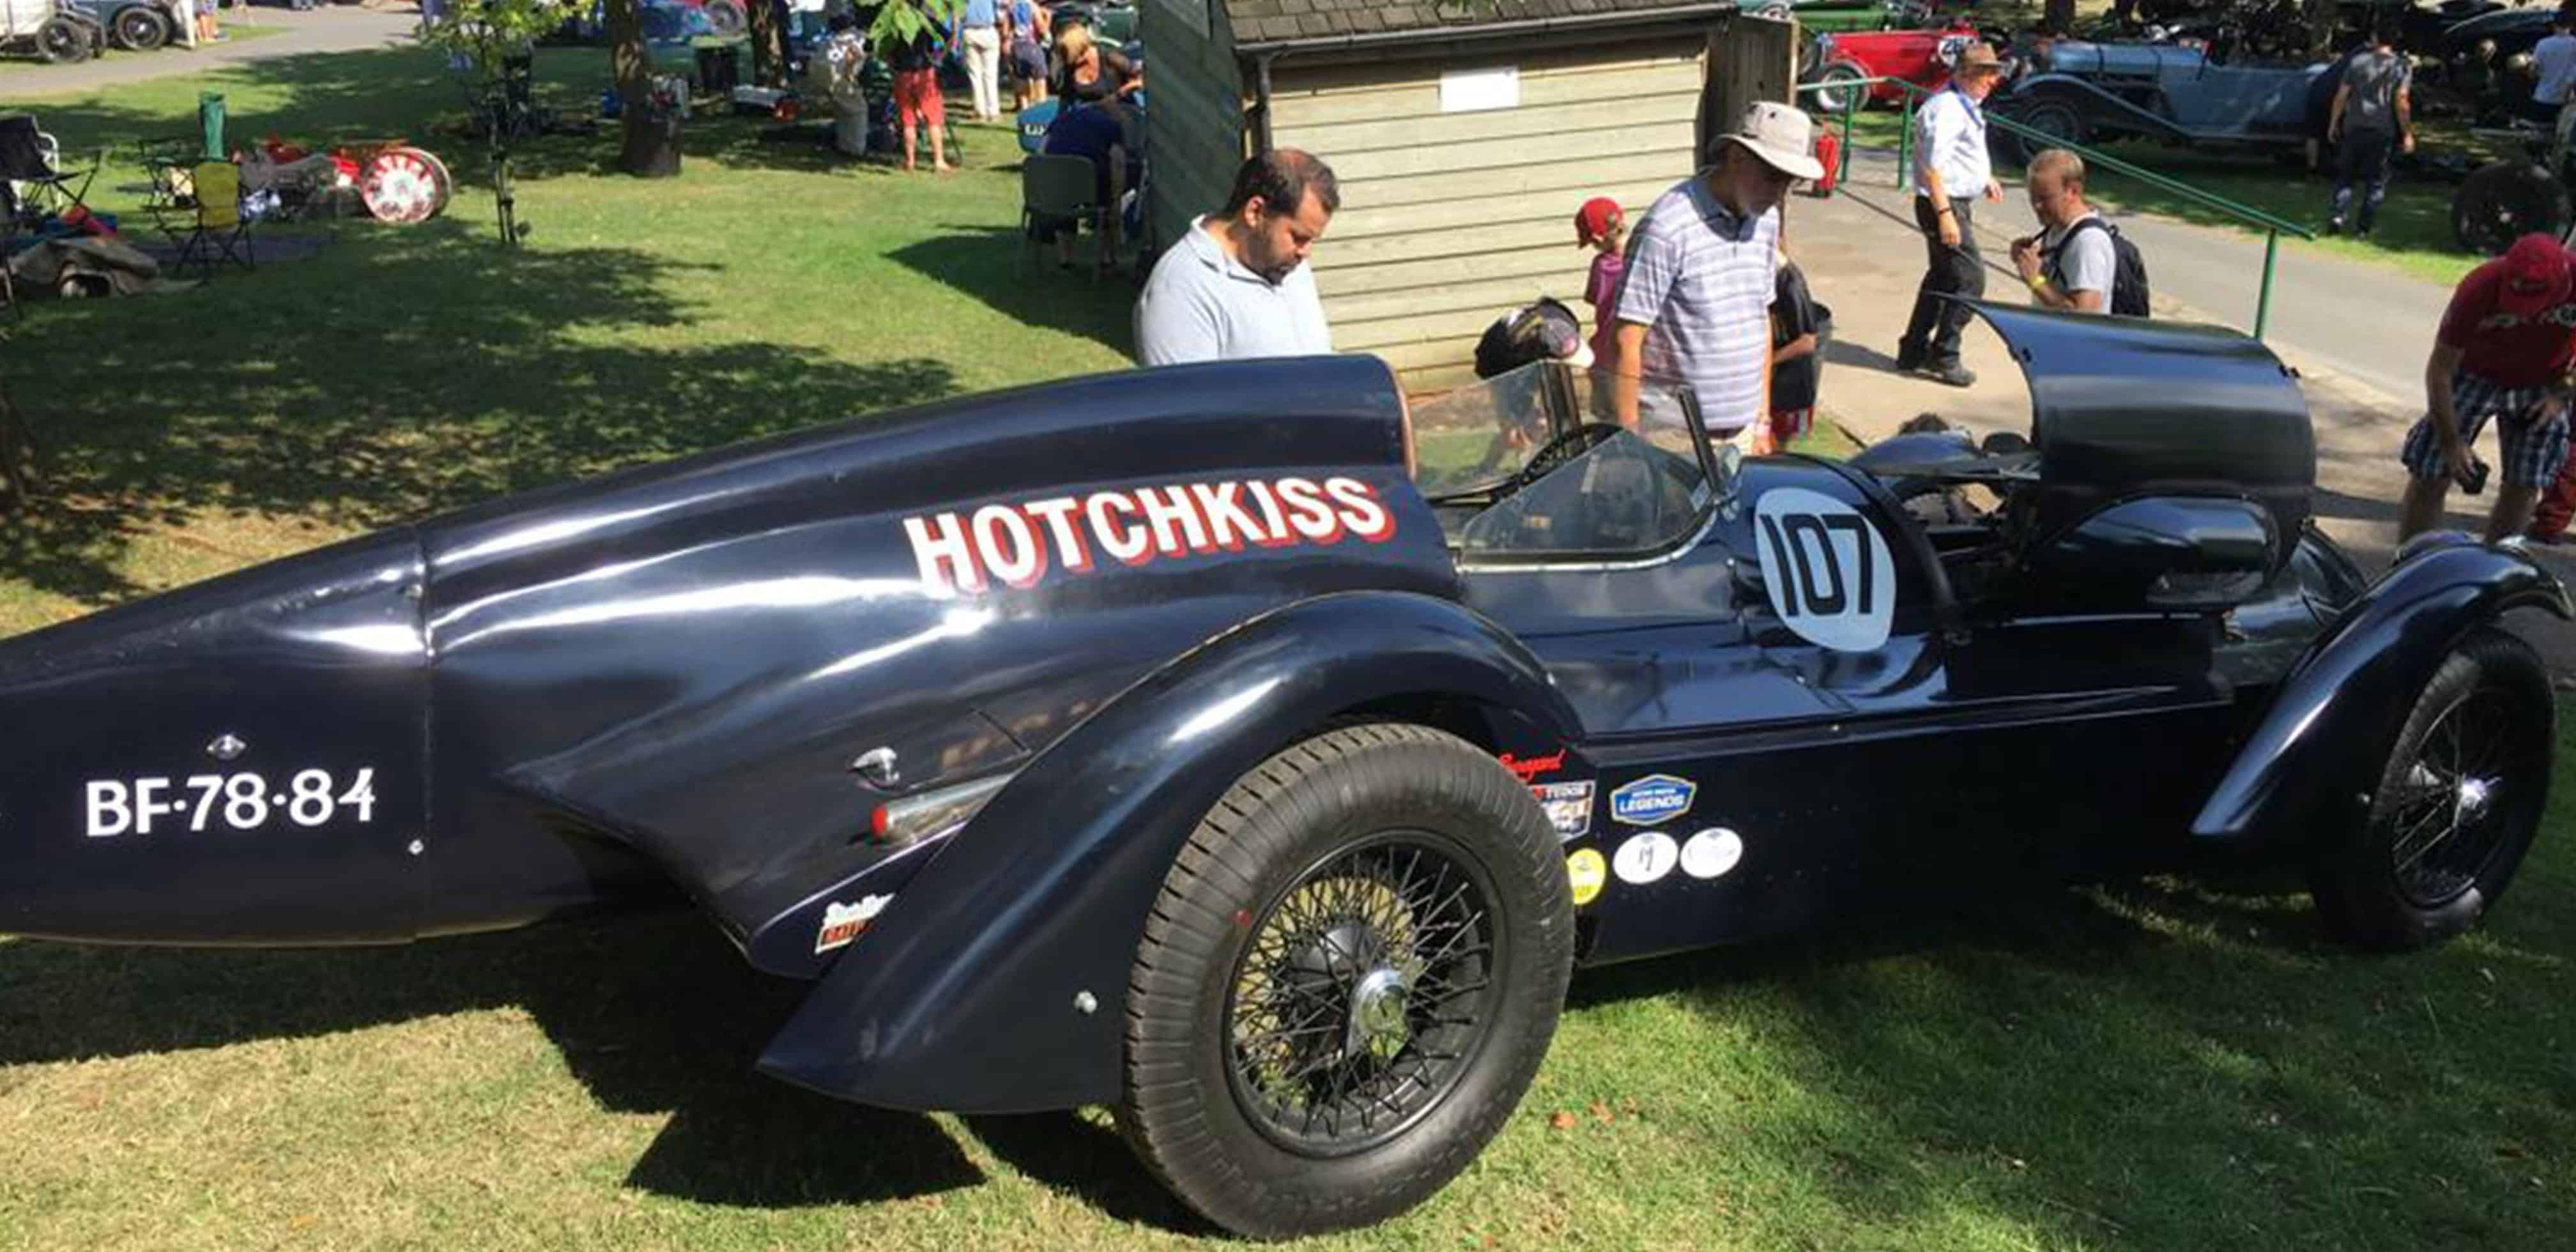 Prescott Hotchkiss car about to race